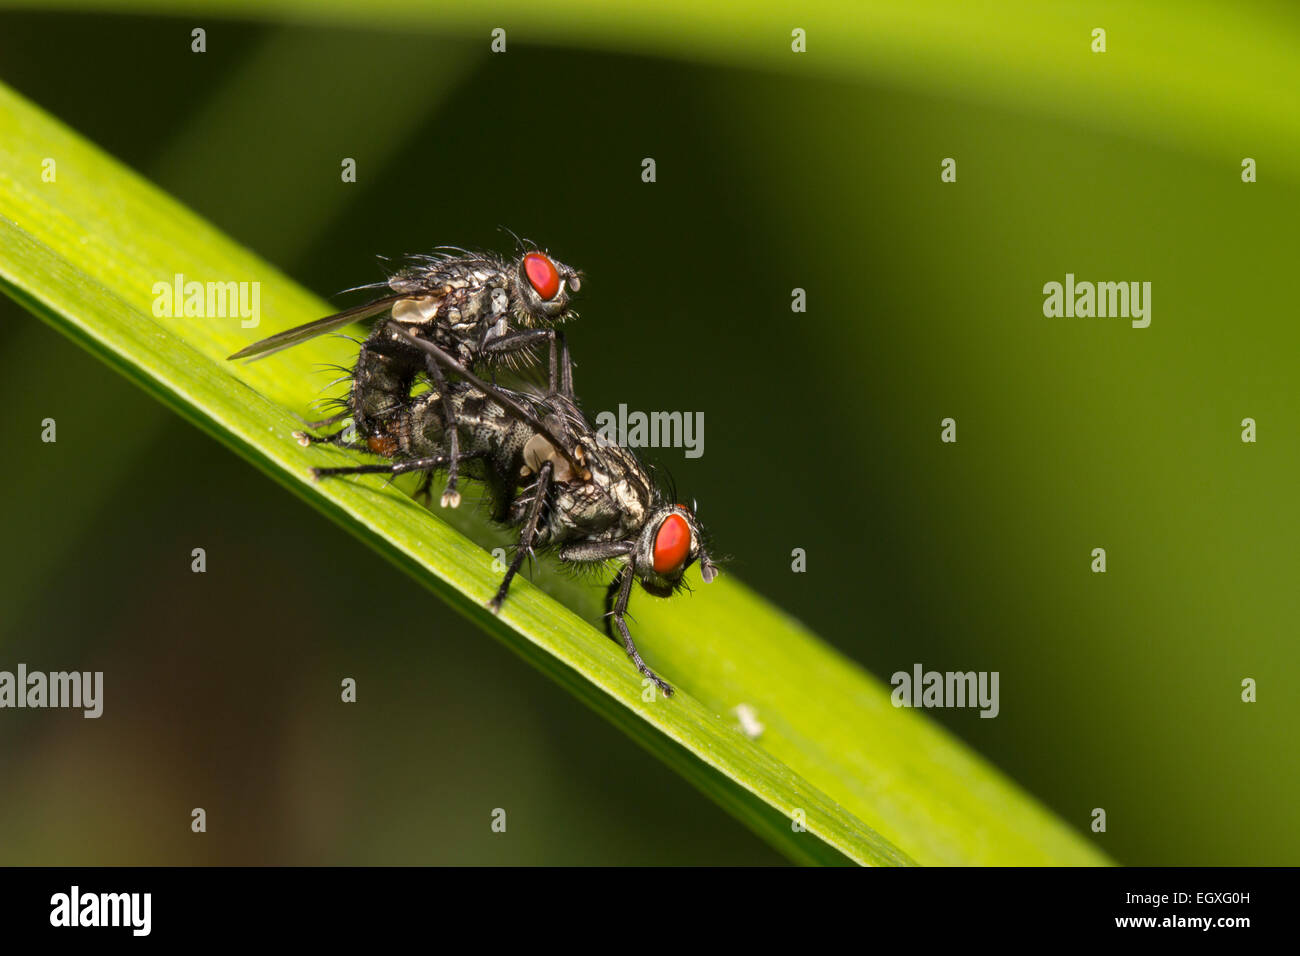 Mating pair of flesh flies, Sarcophaga sp.  Species ID not confirmable. - Stock Image